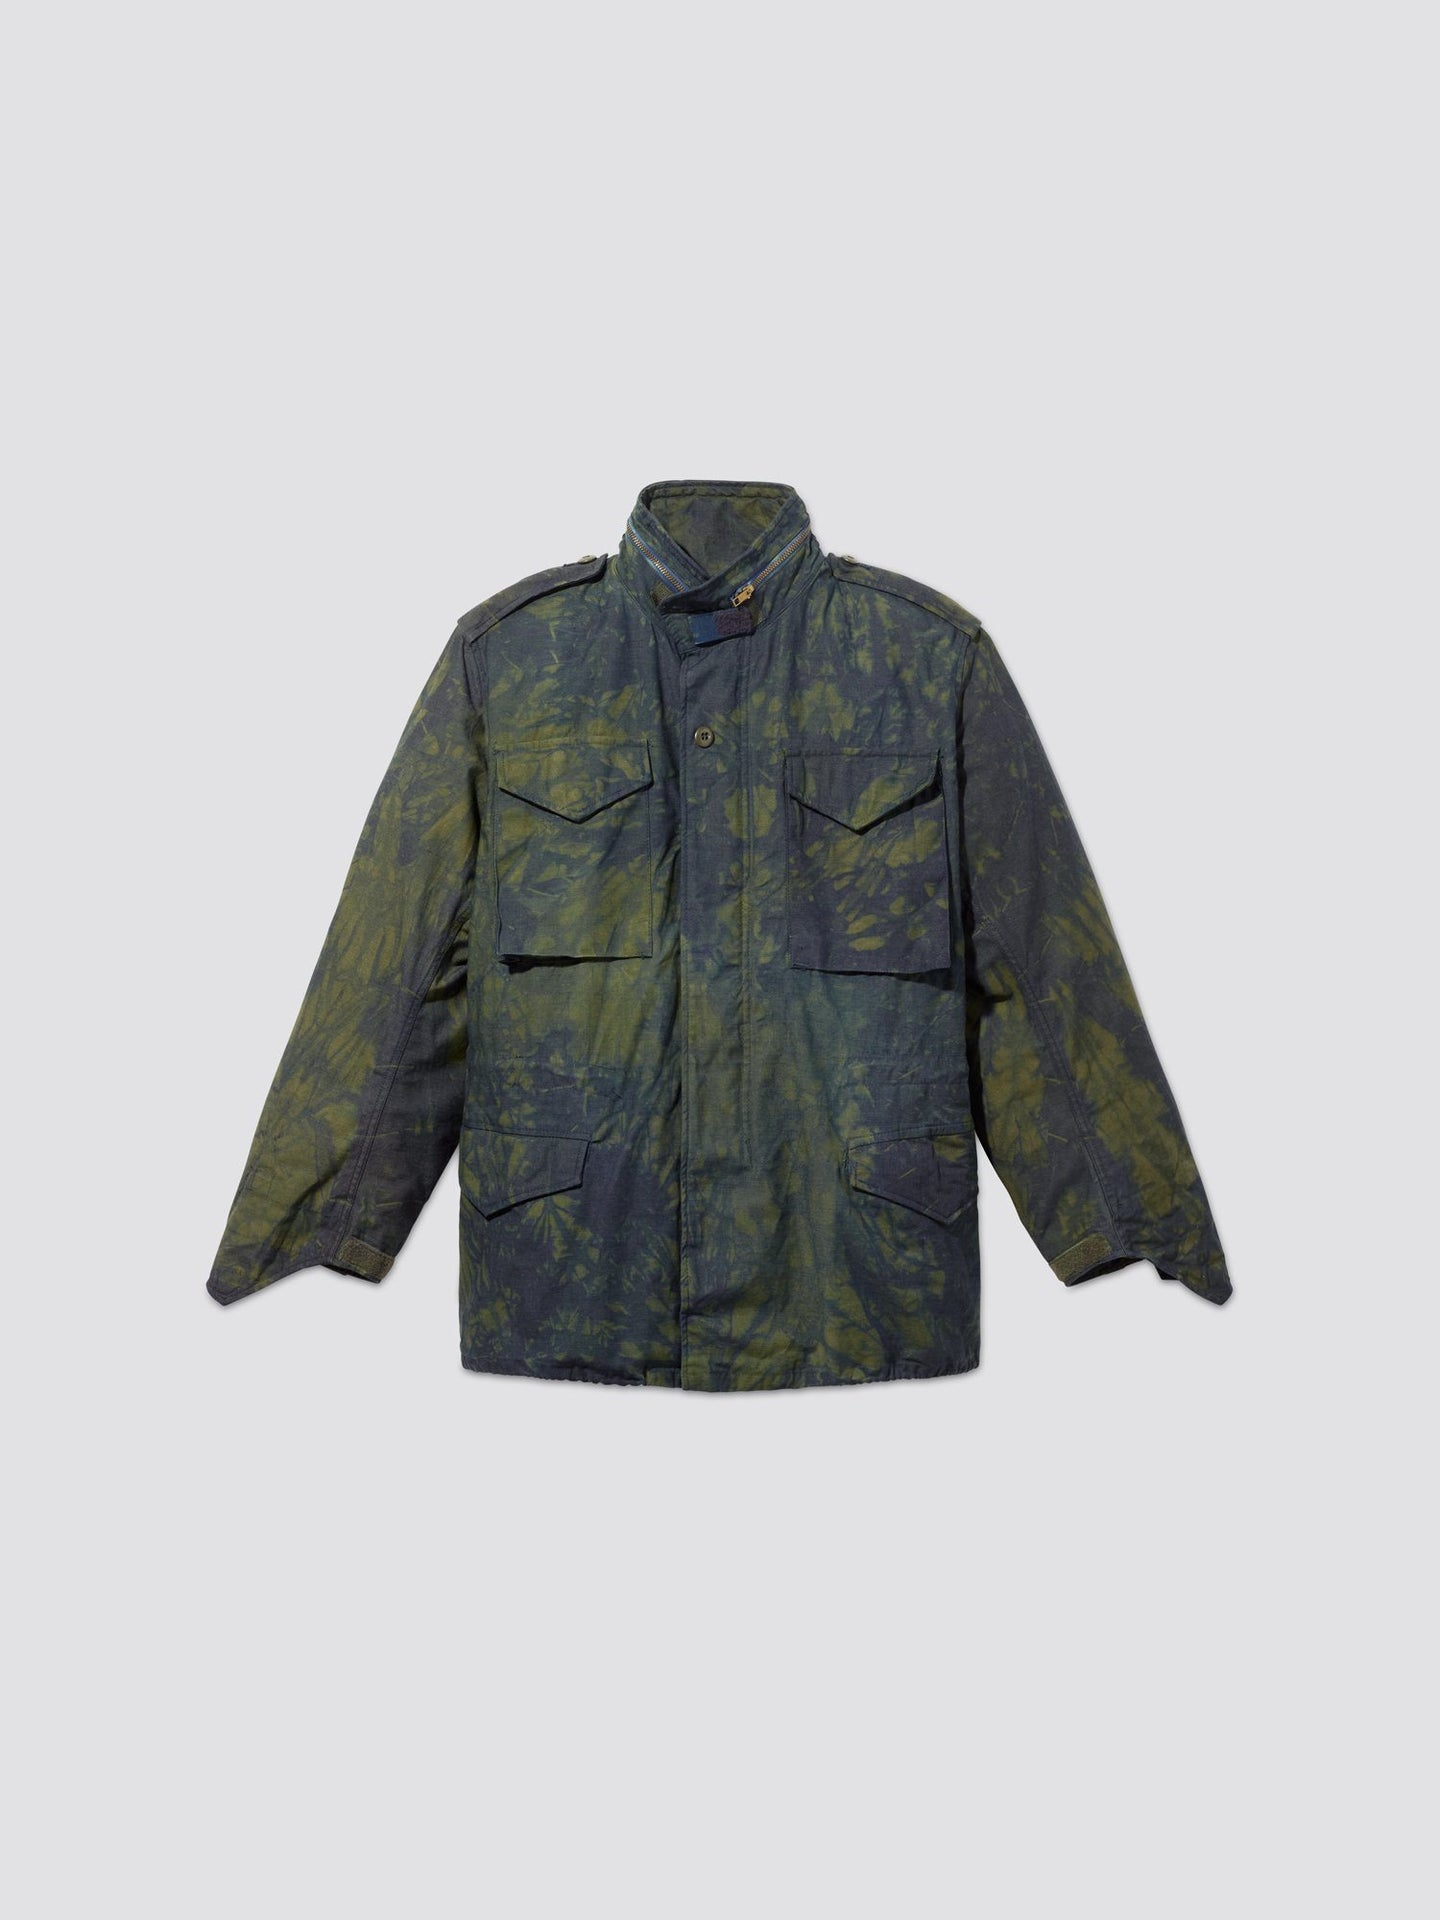 M-65 G DYED FIELD COAT OUTERWEAR Alpha Industries, Inc. M-65 OLIVE SR